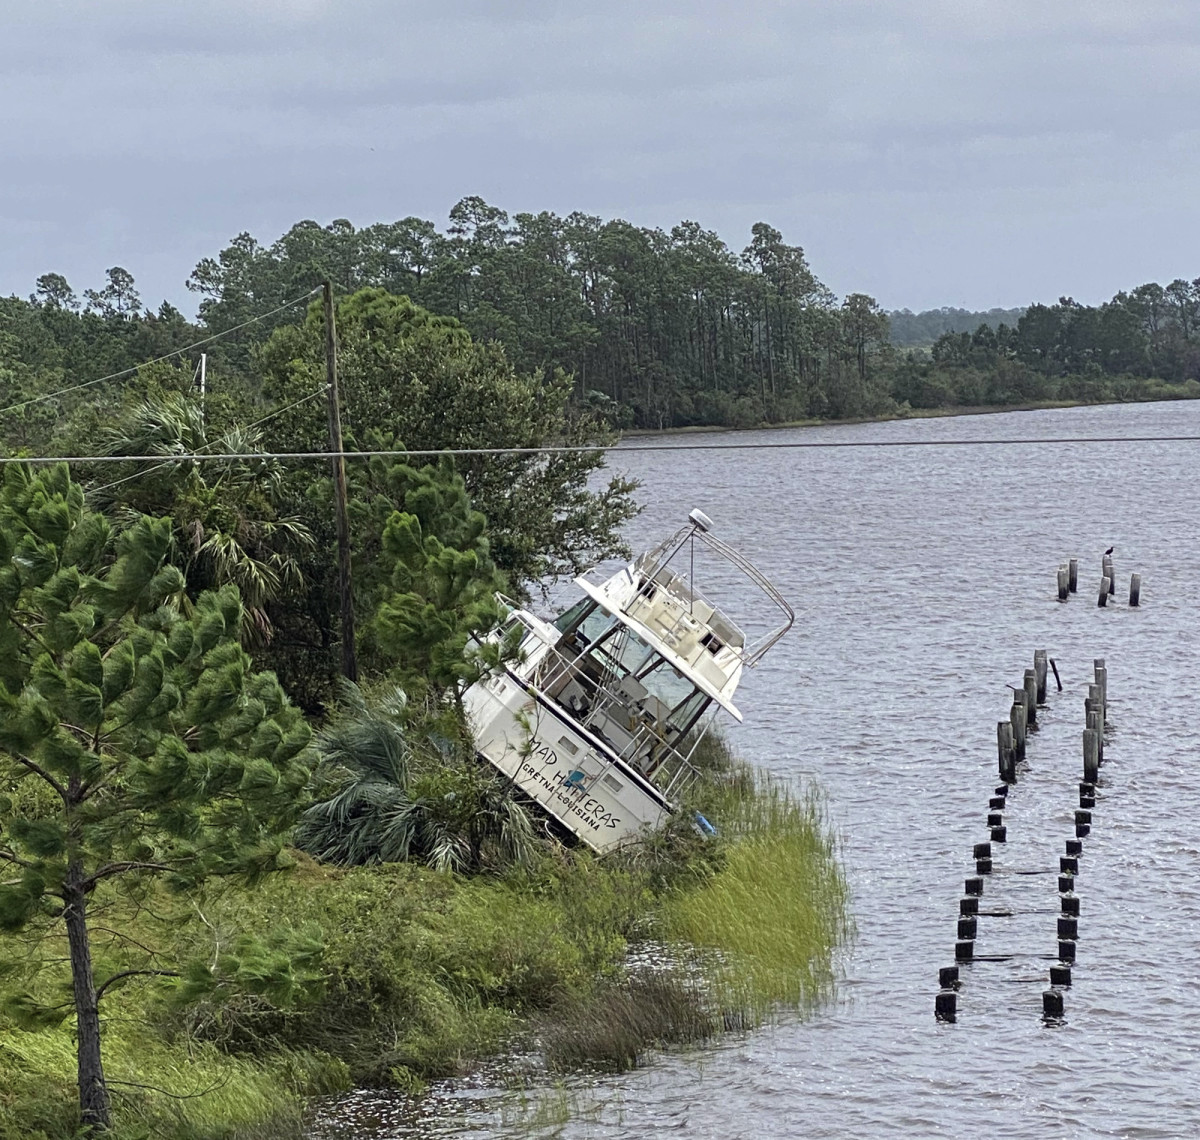 Boat washed up on the shoreline of Bayou Portage in Pass Christian, Miss. from the effects of Hurricane Ida on Monday, Aug. 30, 2021. (Hunter Dawkins/The Gazebo Gazette via AP)/The Gazebo Gazette via AP)